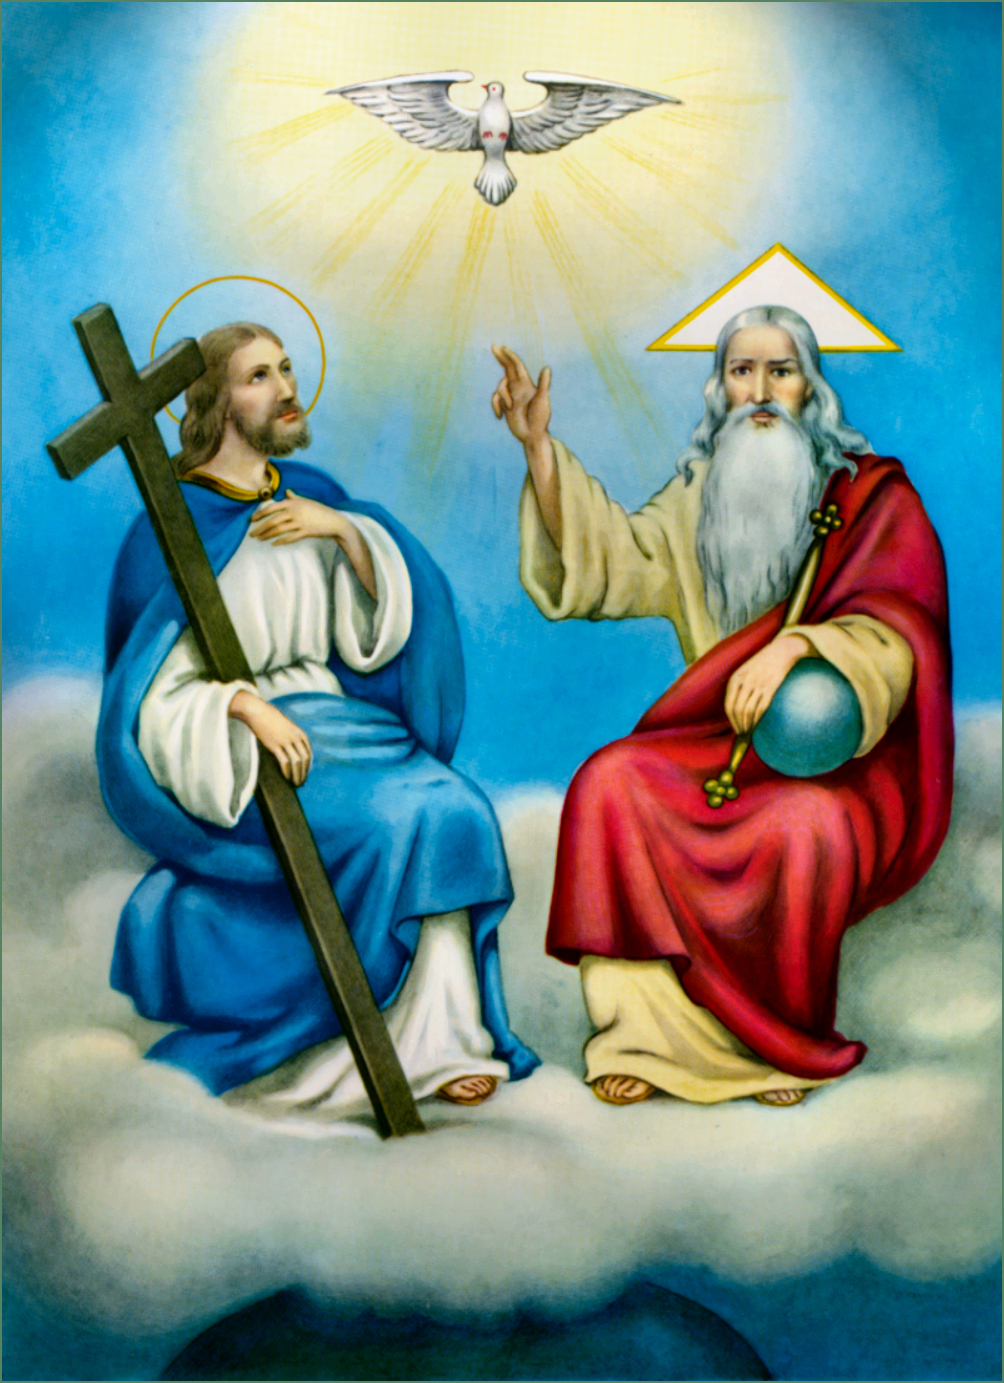 http://www.catholictradition.org/Saints/patrons-halo2.jpg